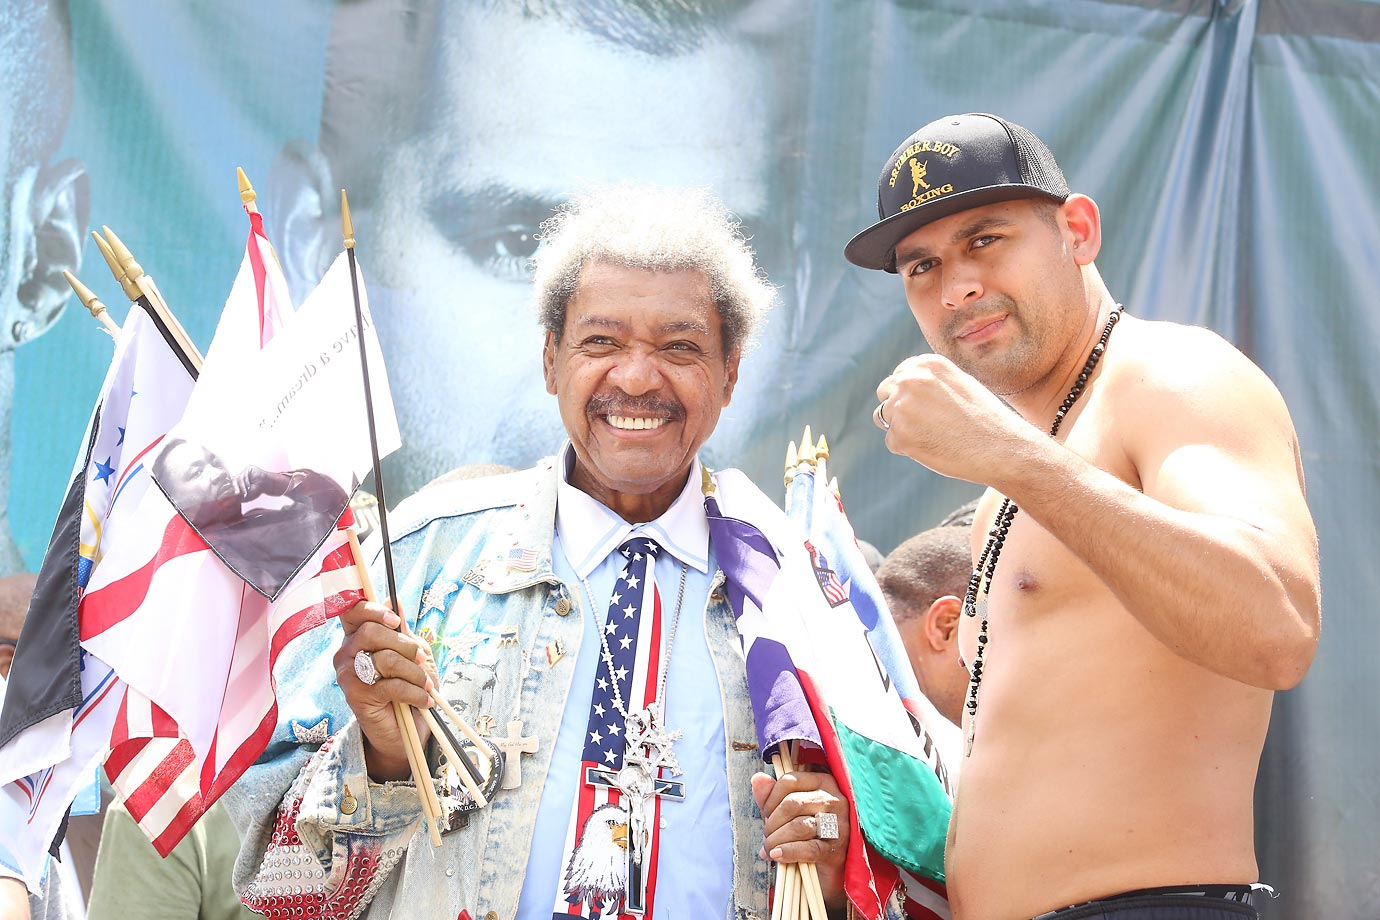 WBC Heavyweight contender Eric Molina poses with Don King after his weigh-in for his bout against WBC heavyweight champion Deontay Wilder.